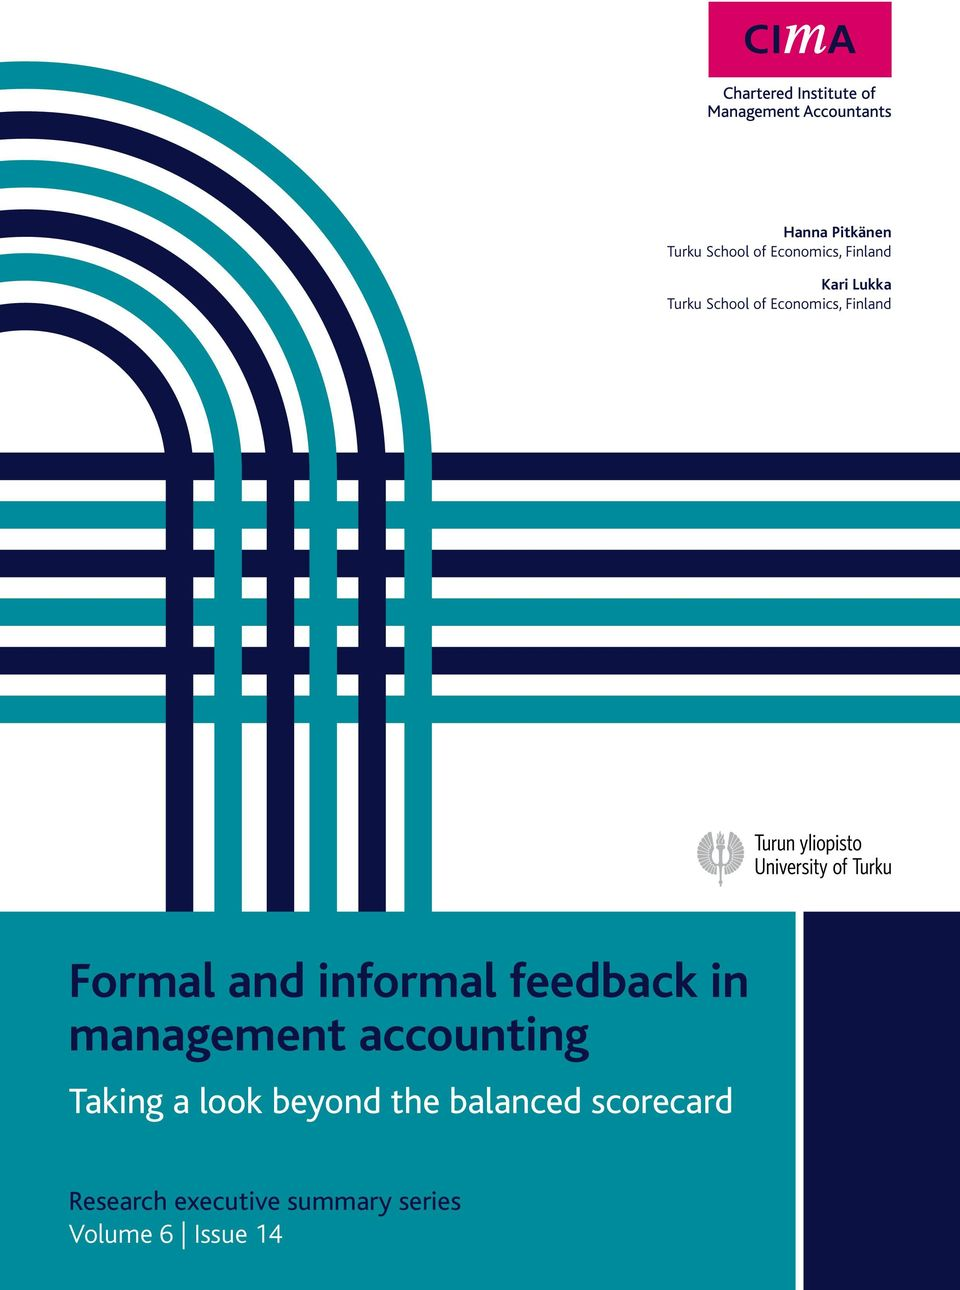 feedback in management accounting Taking a look beyond the